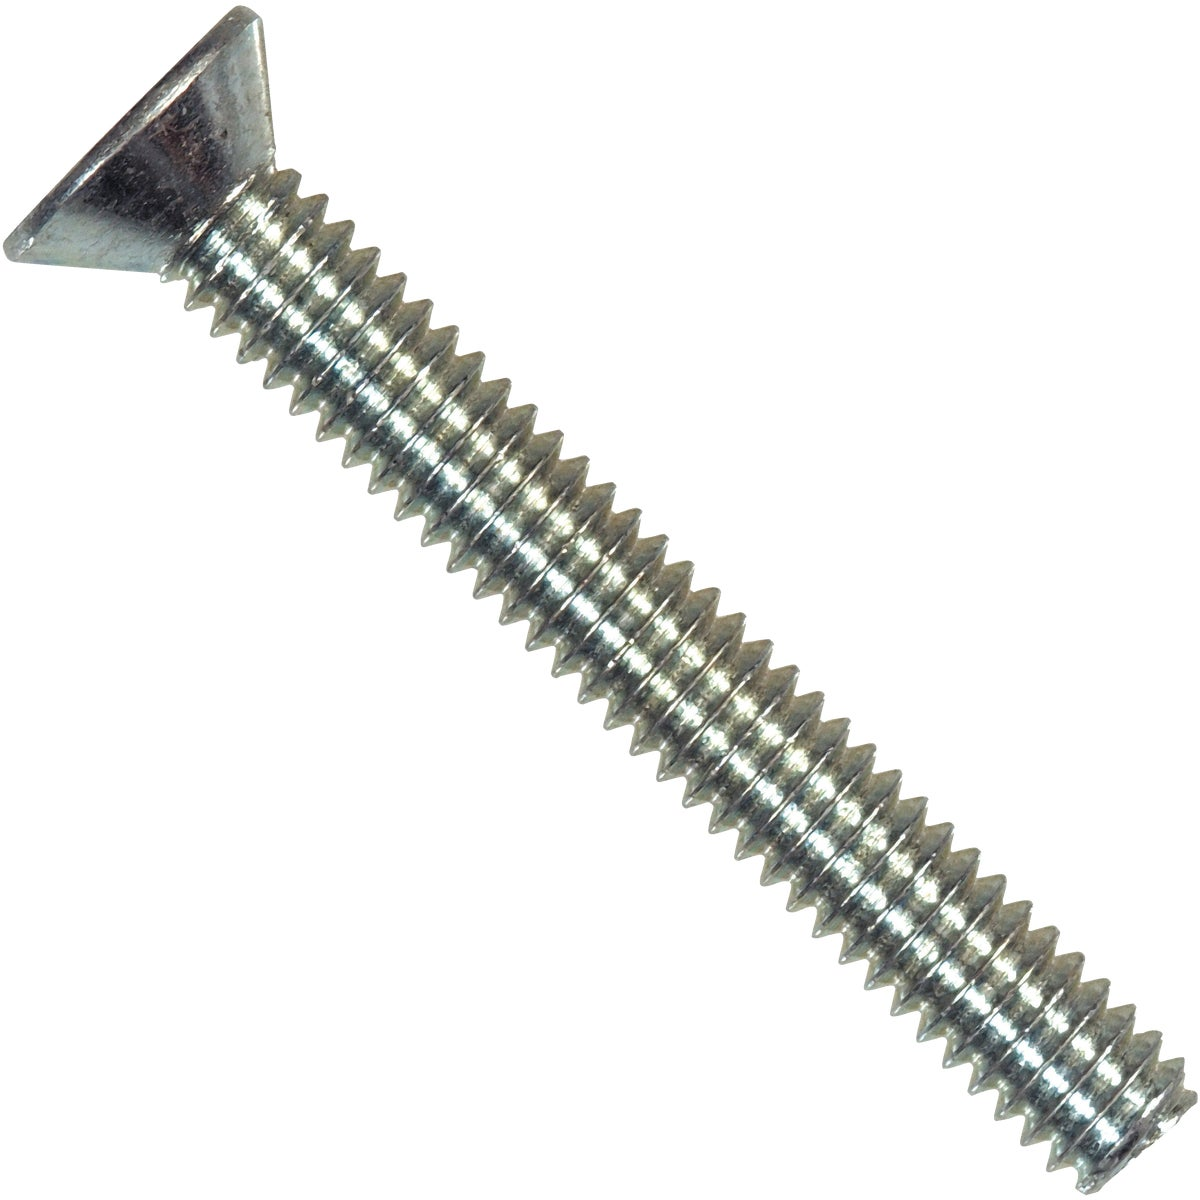 8-32X3/4 PH F MACH SCREW